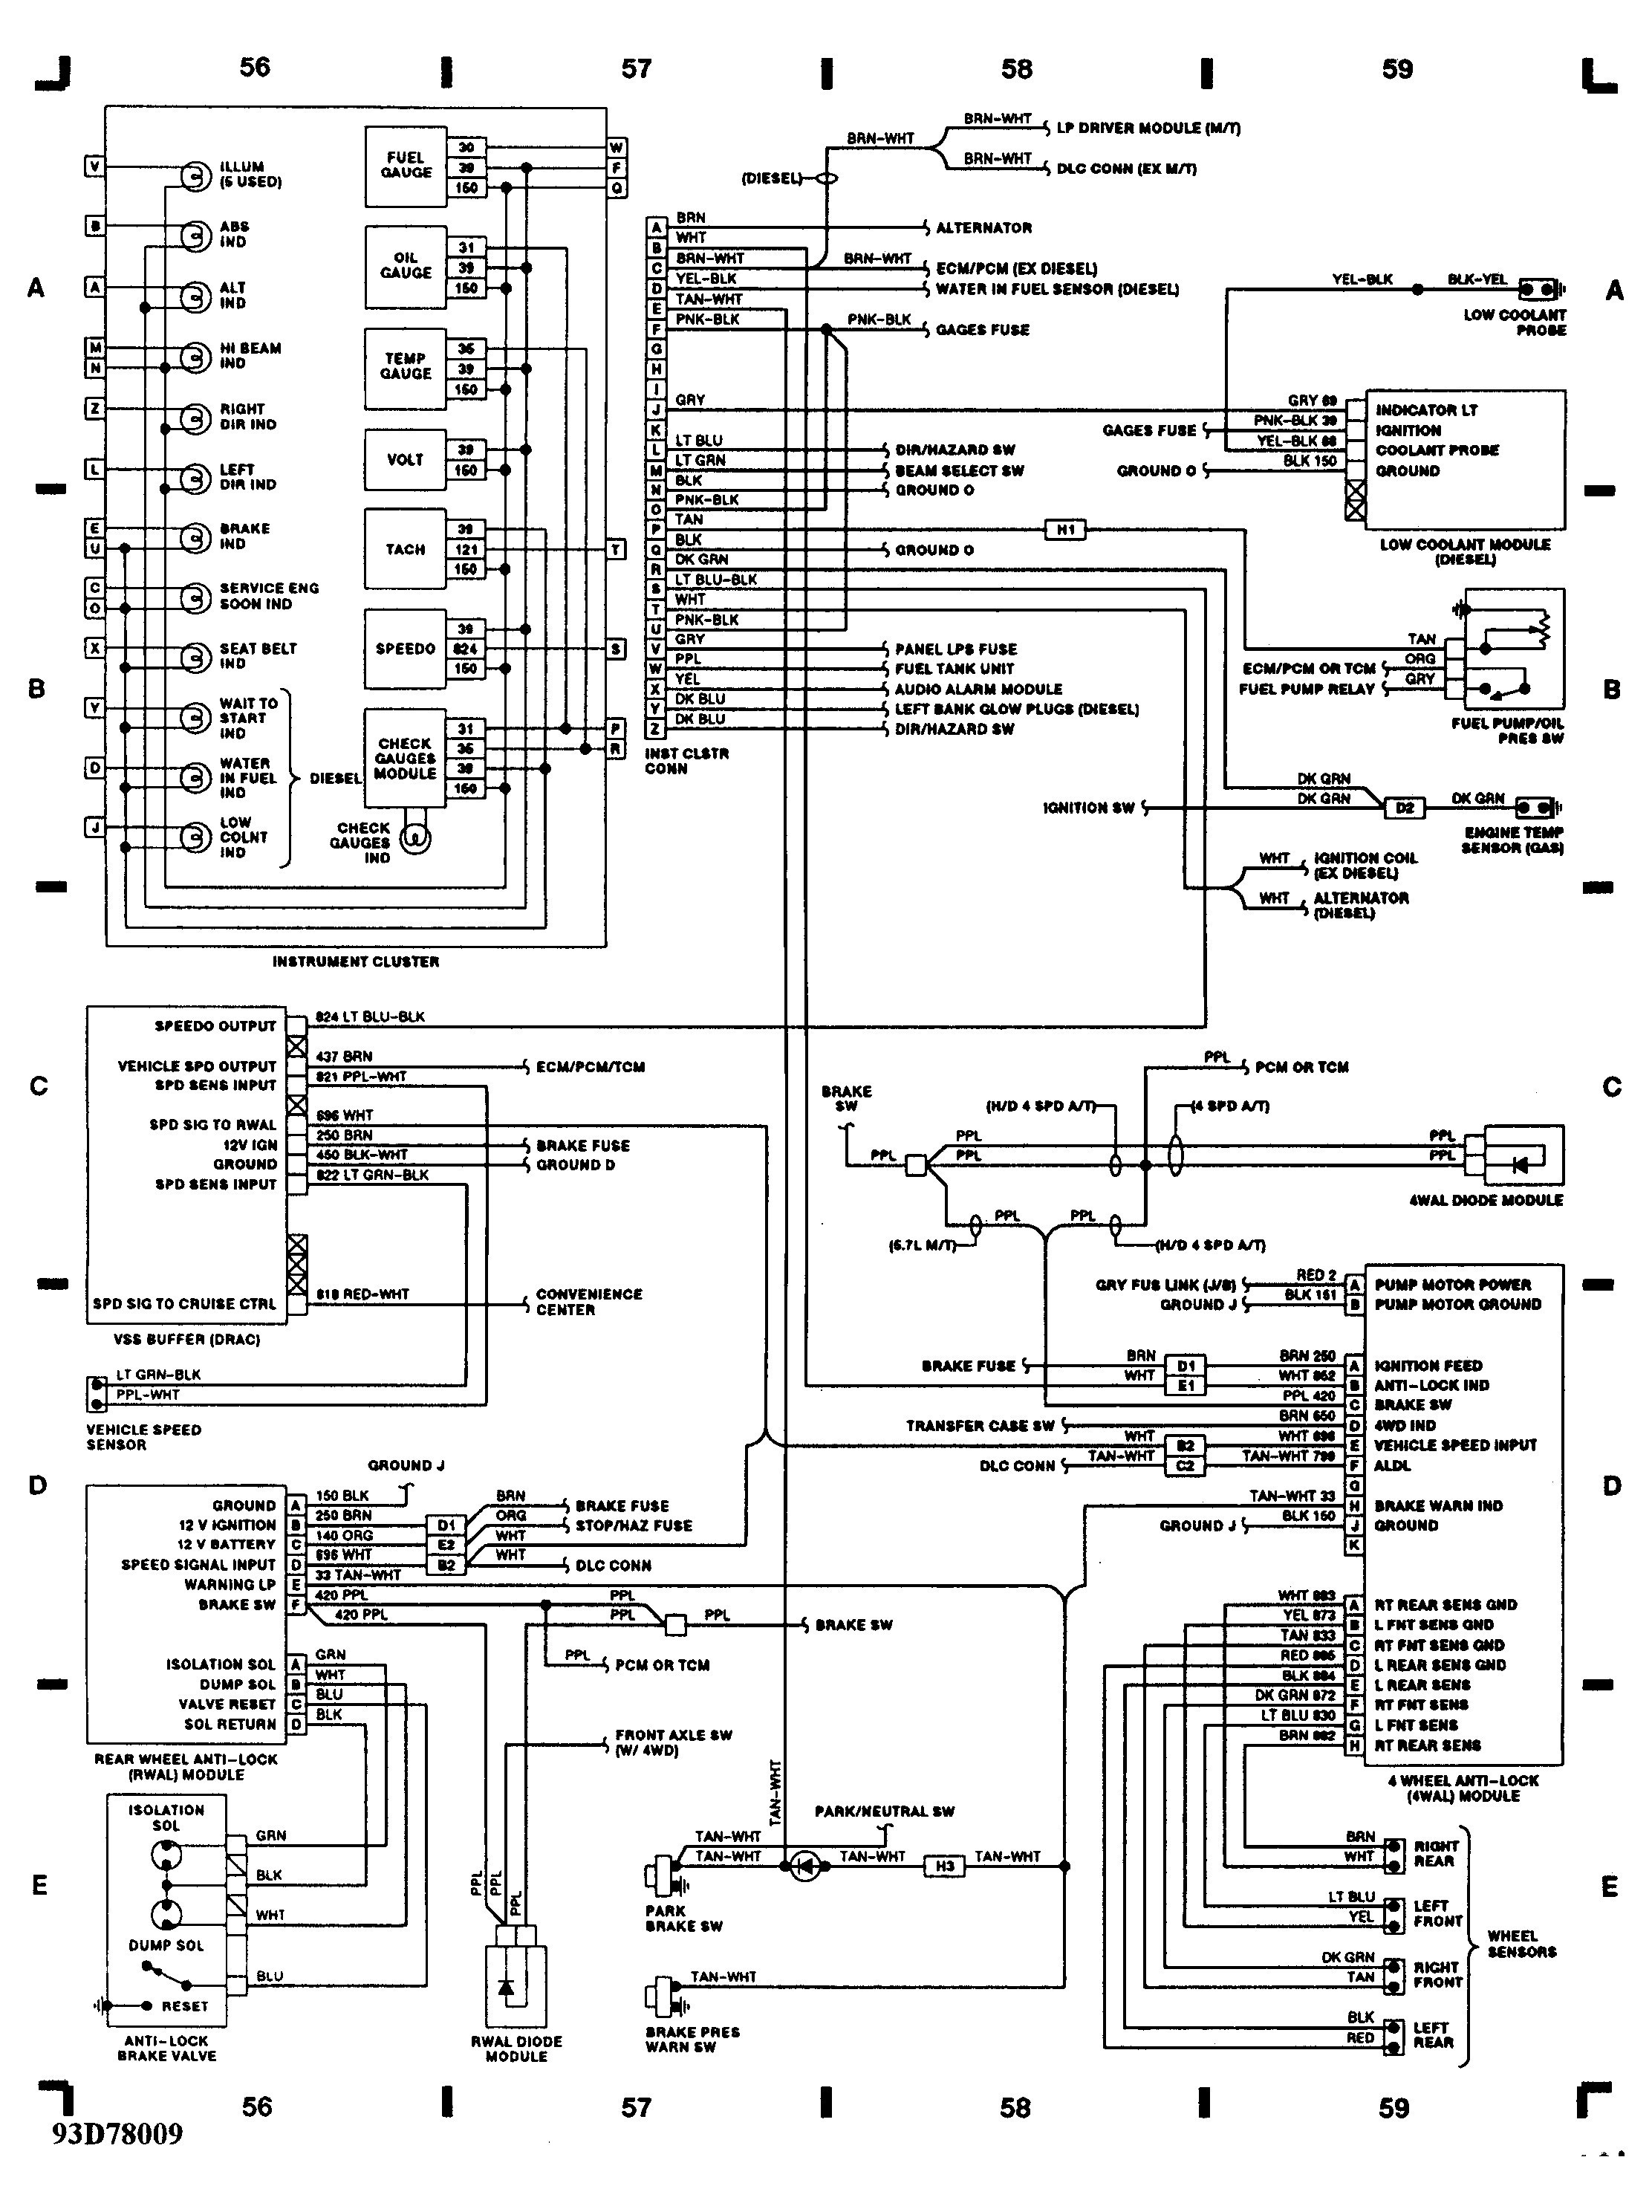 2004 Gmc Serria Ignition Switch Wire Color Diagram] 2006 Chevy 3500 Wiring Diagram Full Version Hd Of 2004 Gmc Serria Ignition Switch Wire Color